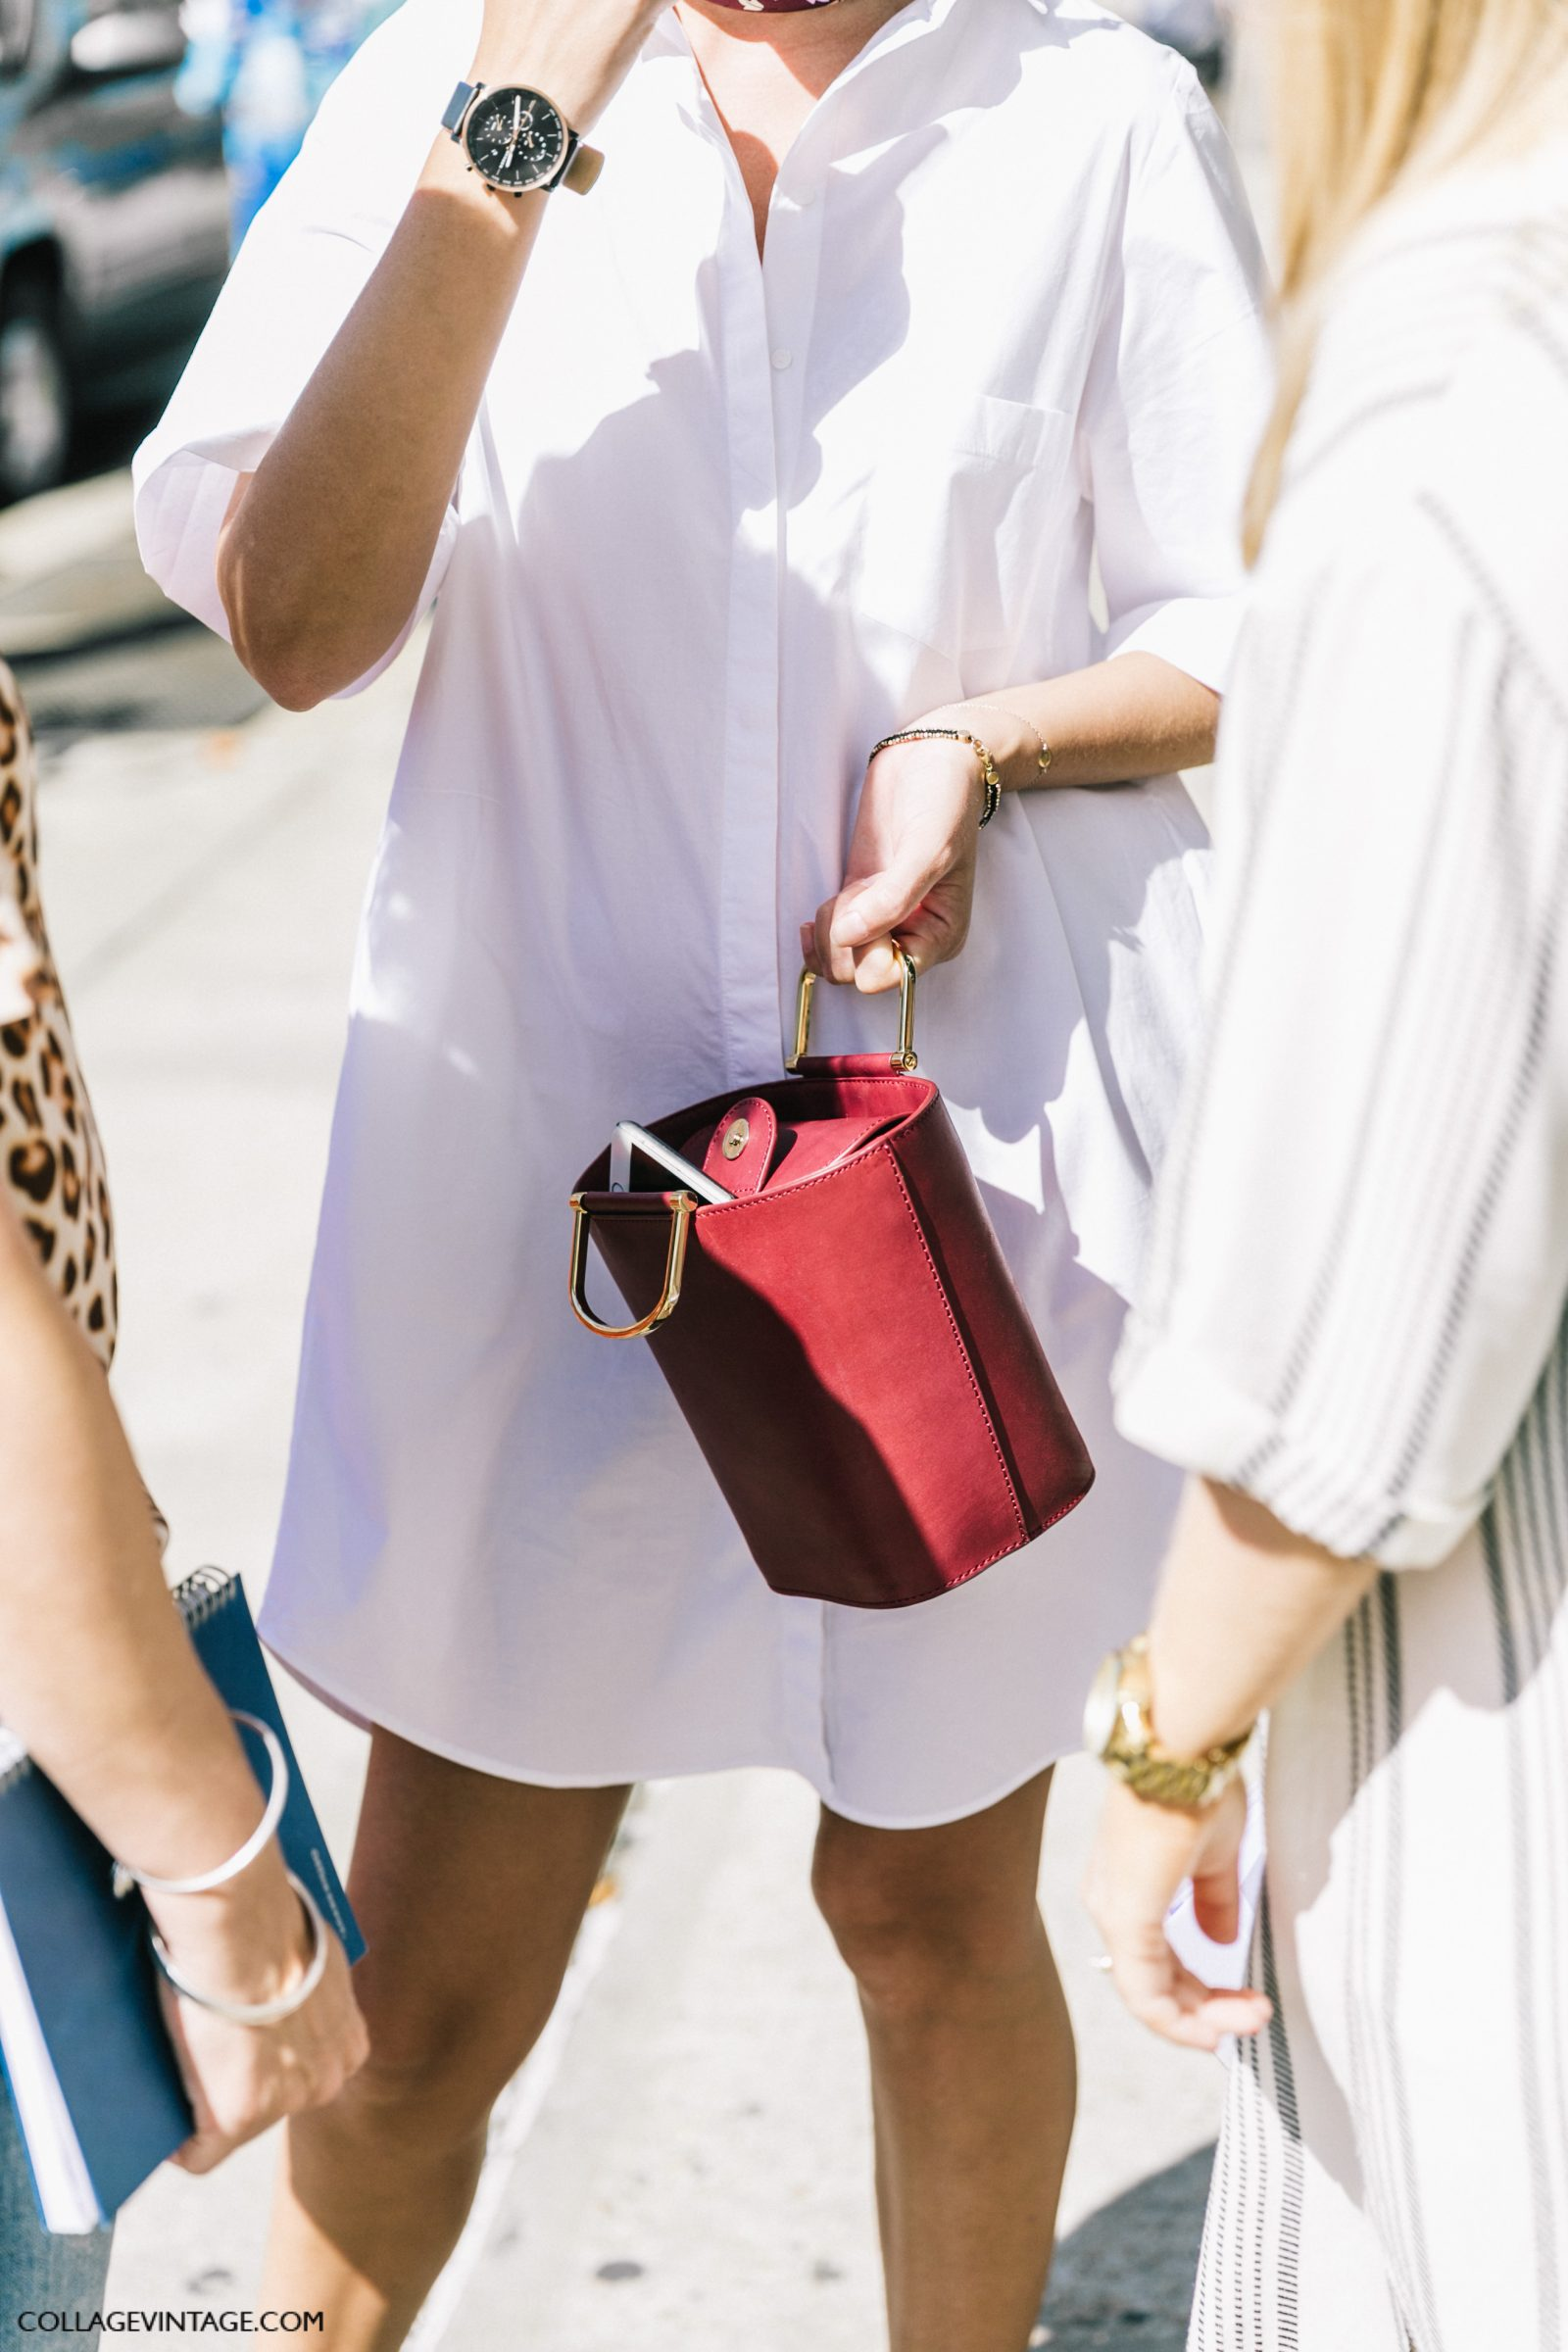 nyfw-new_york_fashion_week_ss17-street_style-outfits-collage_vintage-vintage-atuzarra-3